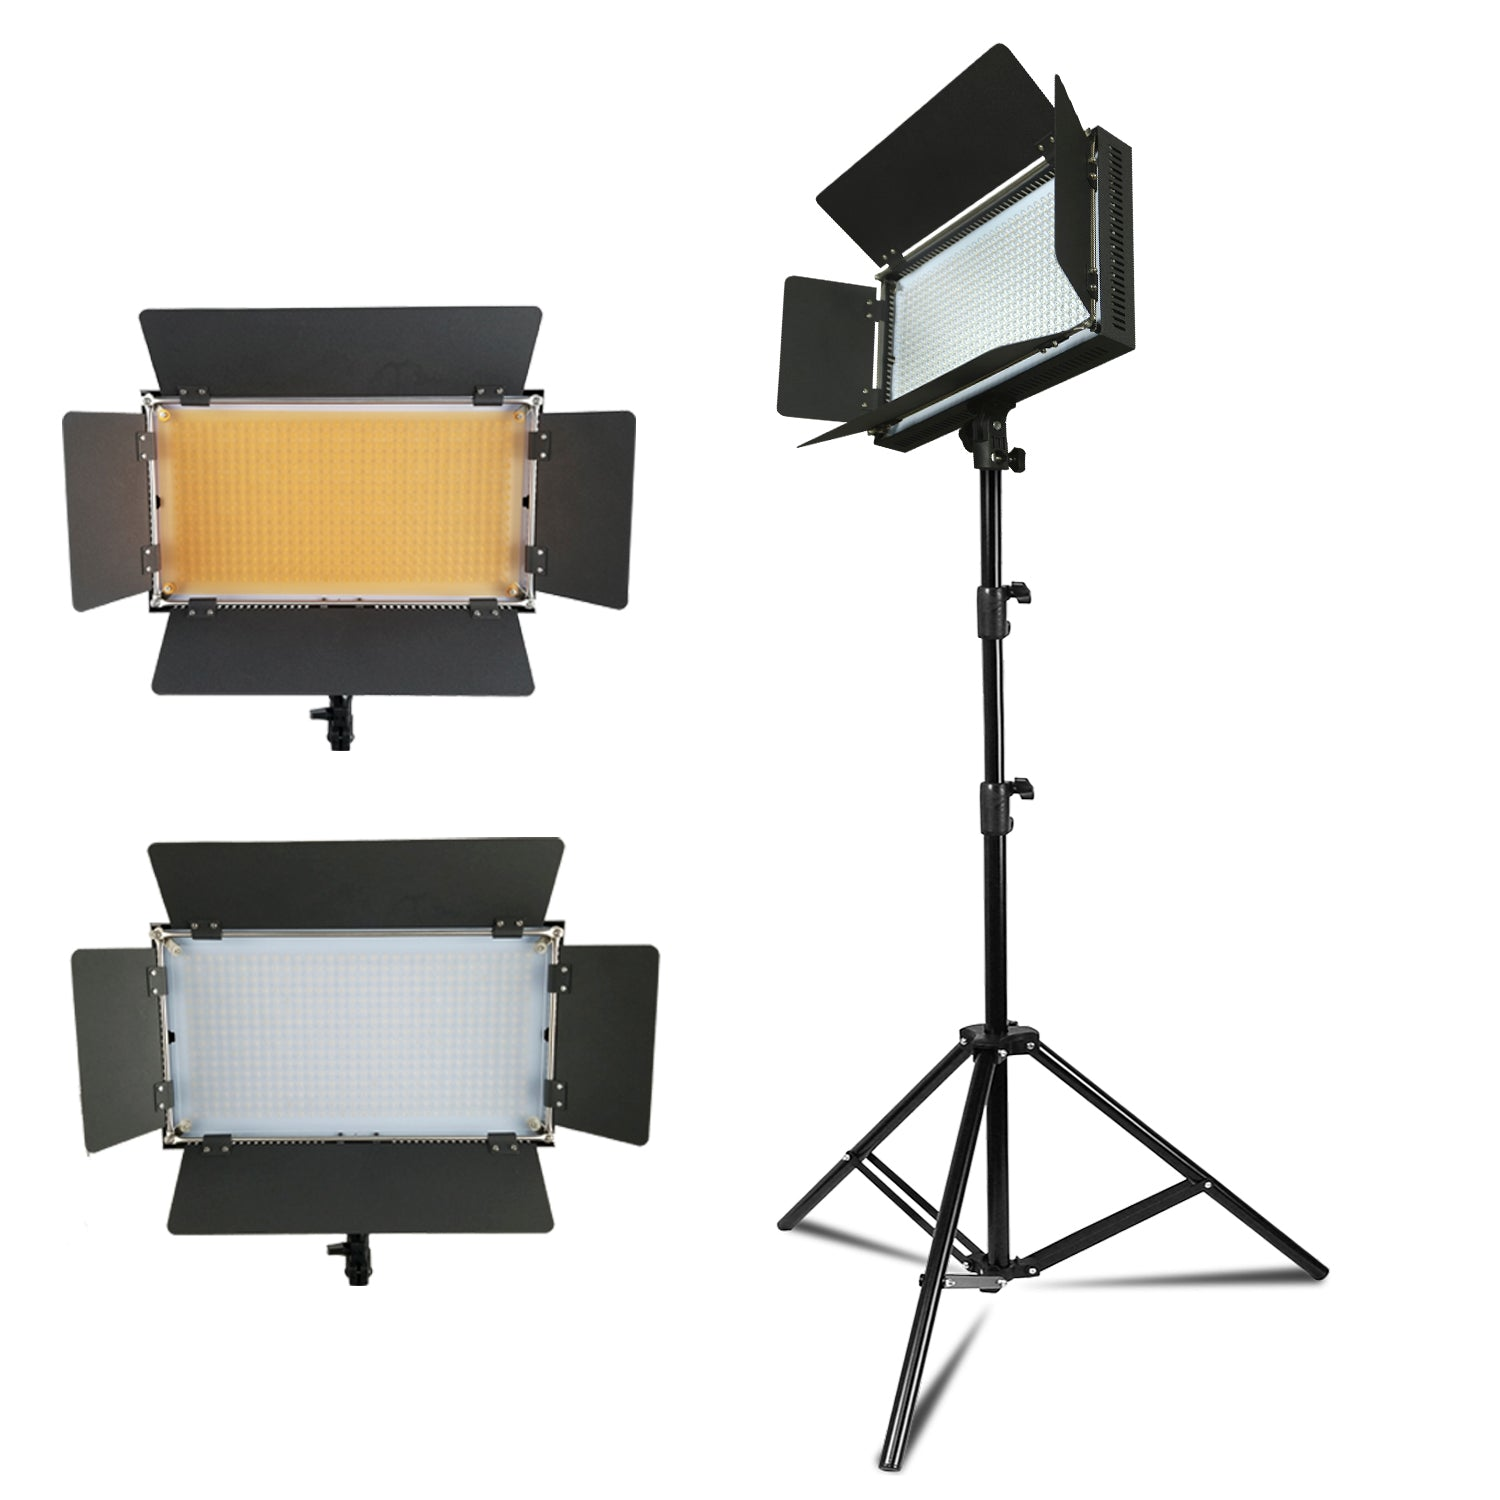 u dimmable charger for light shooting lighting photo rechargeable youtube product camera and battery cri studio neewer bi bracket kit barndoor video with color led